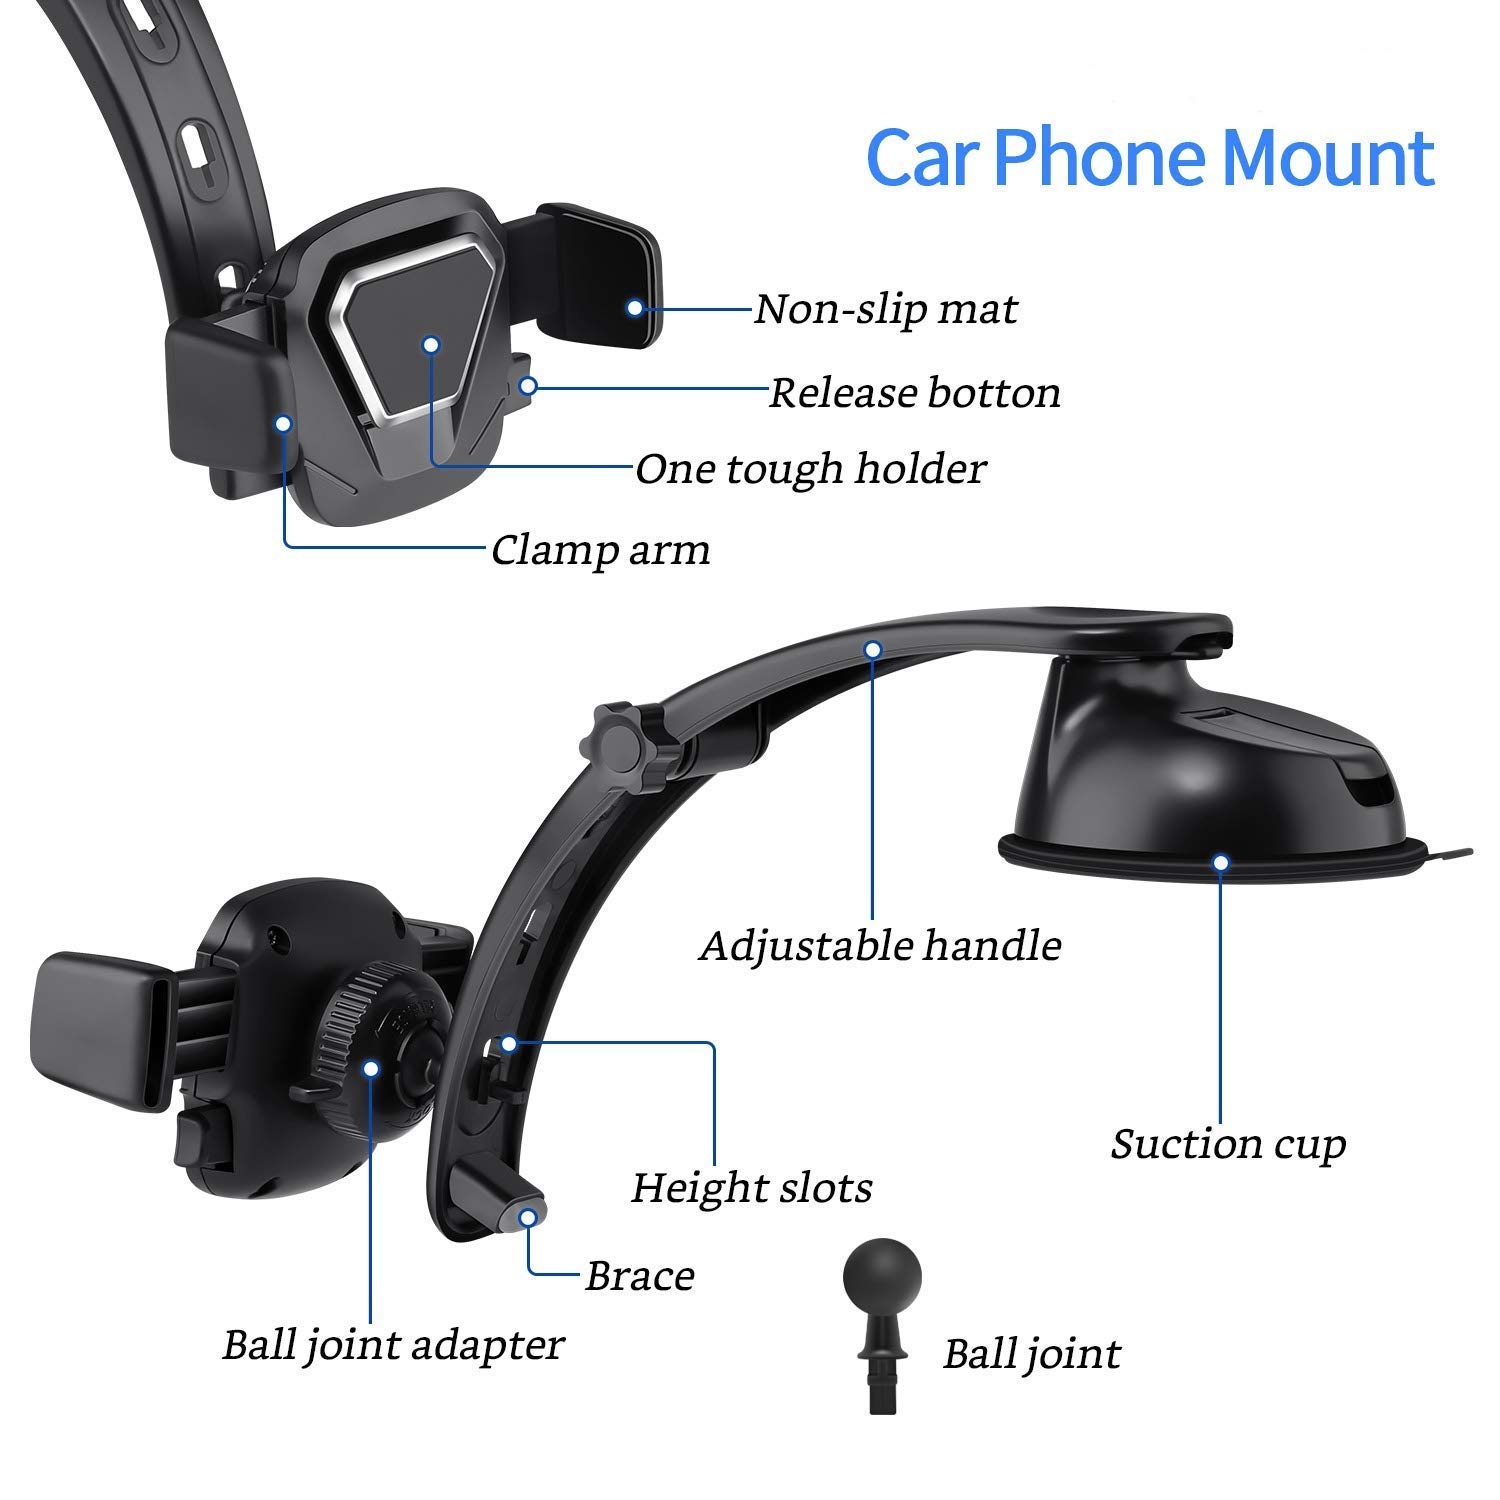 AIRGINE Car Dashboard Mount Phone Holder, Car Mobile Phone Stand,Adjustable Dash Cell Phone Grip Cradle for Samsung Galaxy S10/S9/S8/S9+/S8+/Note9/Note8, iPhone X/Xs/Max/XR/8 Smartphones